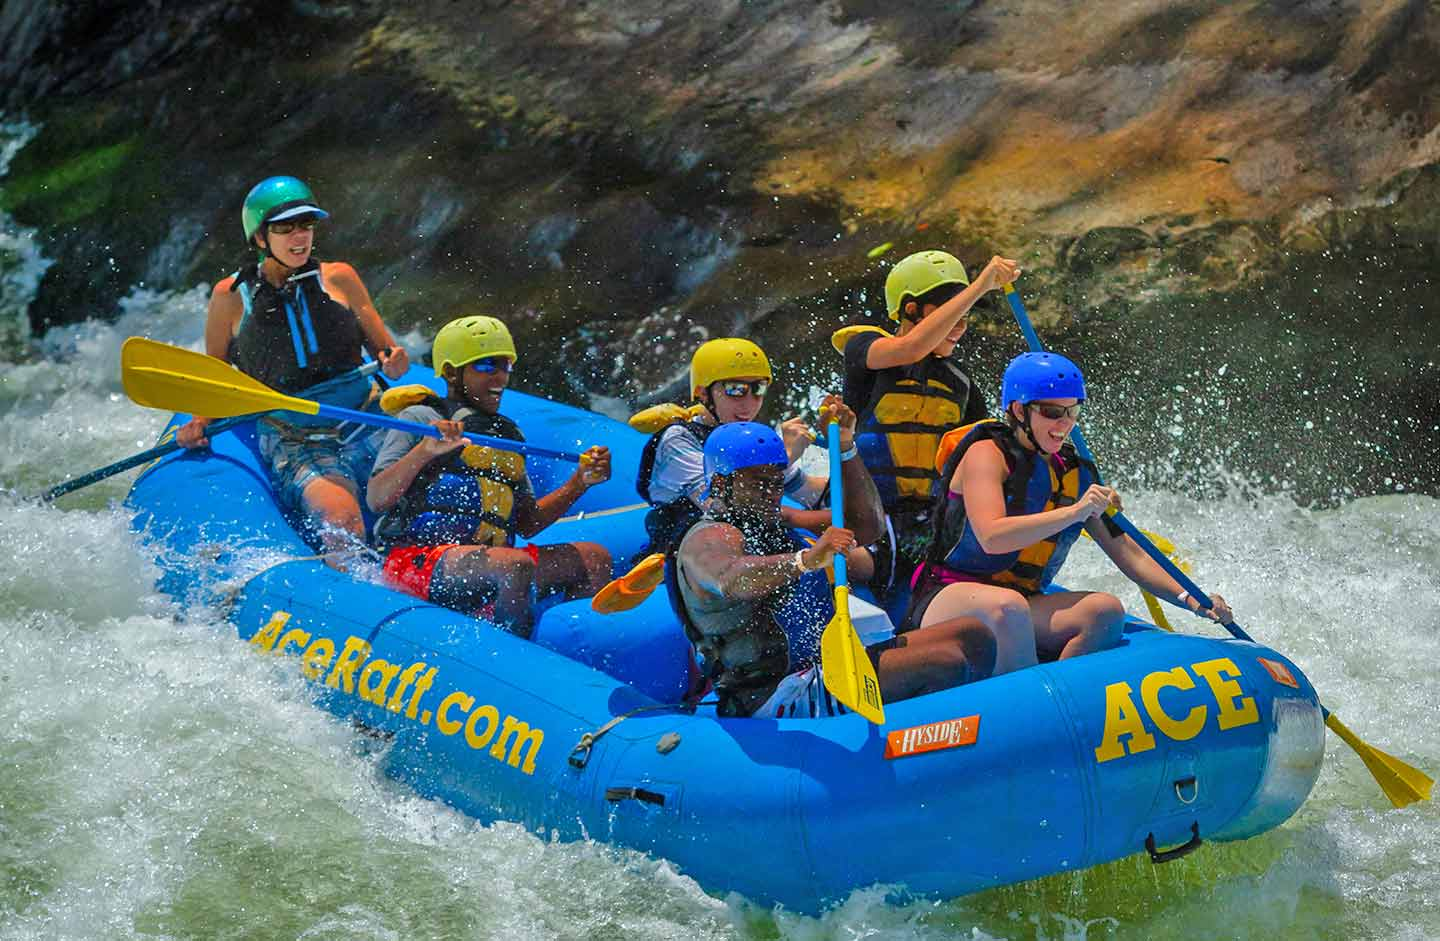 Half Day Lower New River Gorge Whitewater Rafting